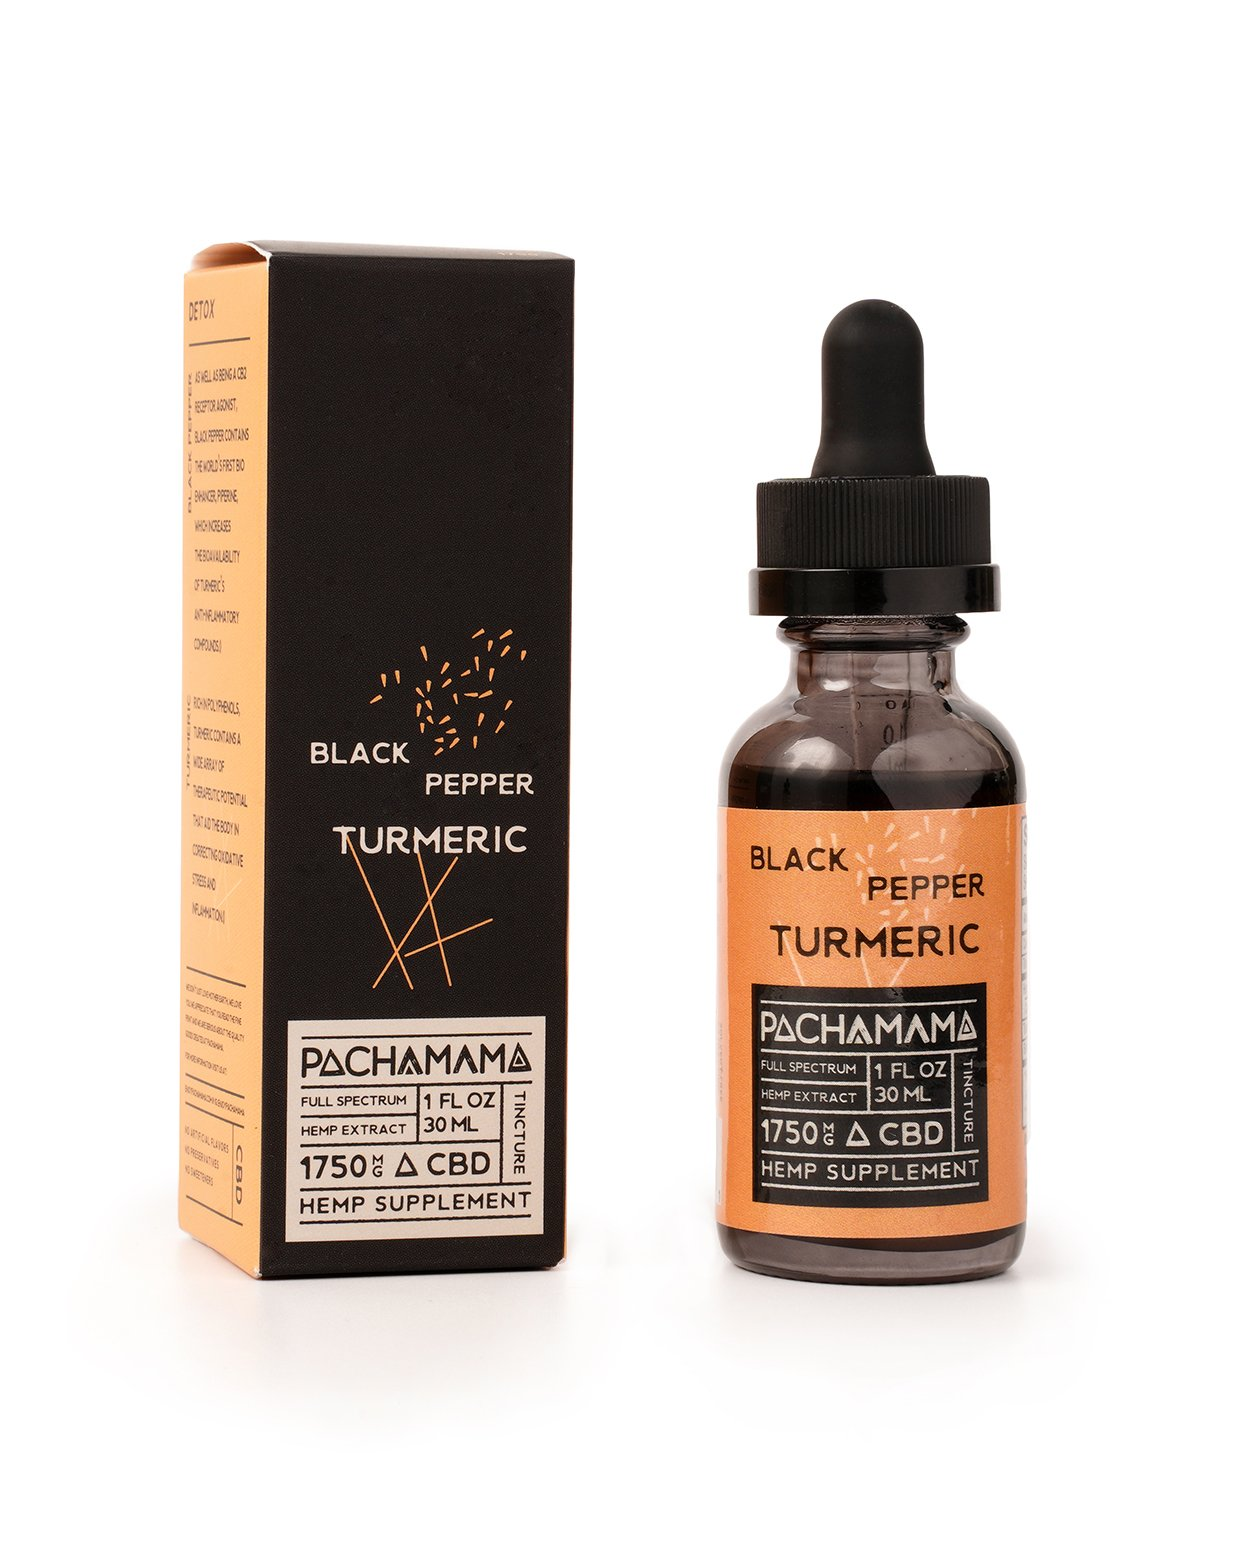 Pacha Mama Black Pepper Turmeric - All CBD Co